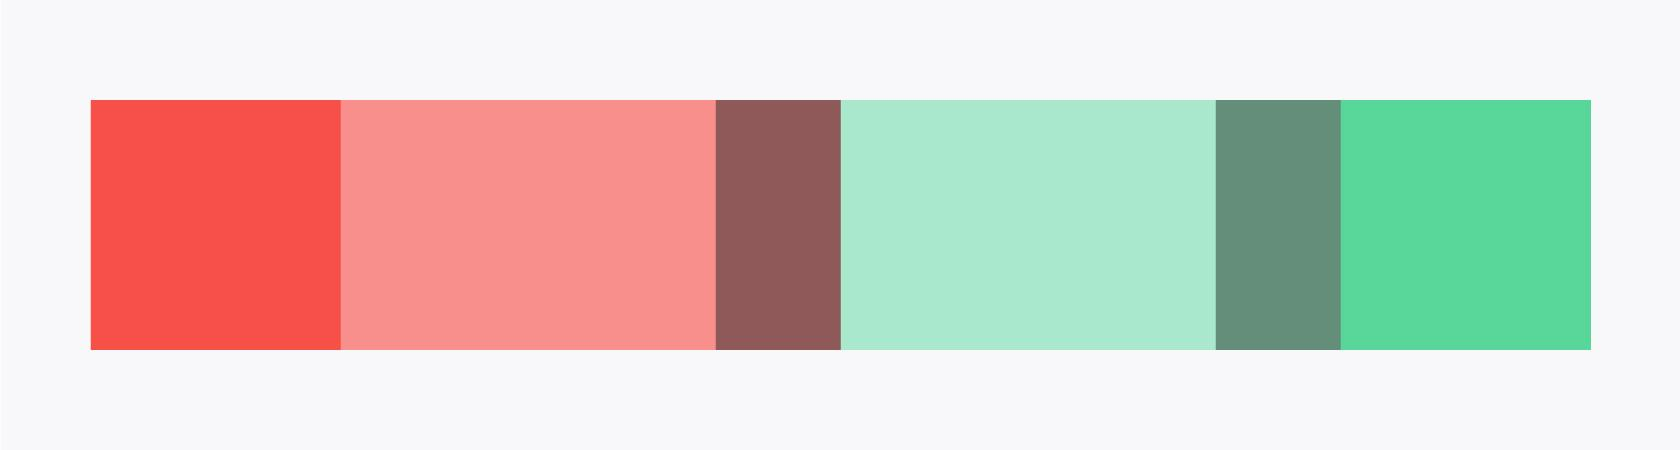 UI design colors complementary